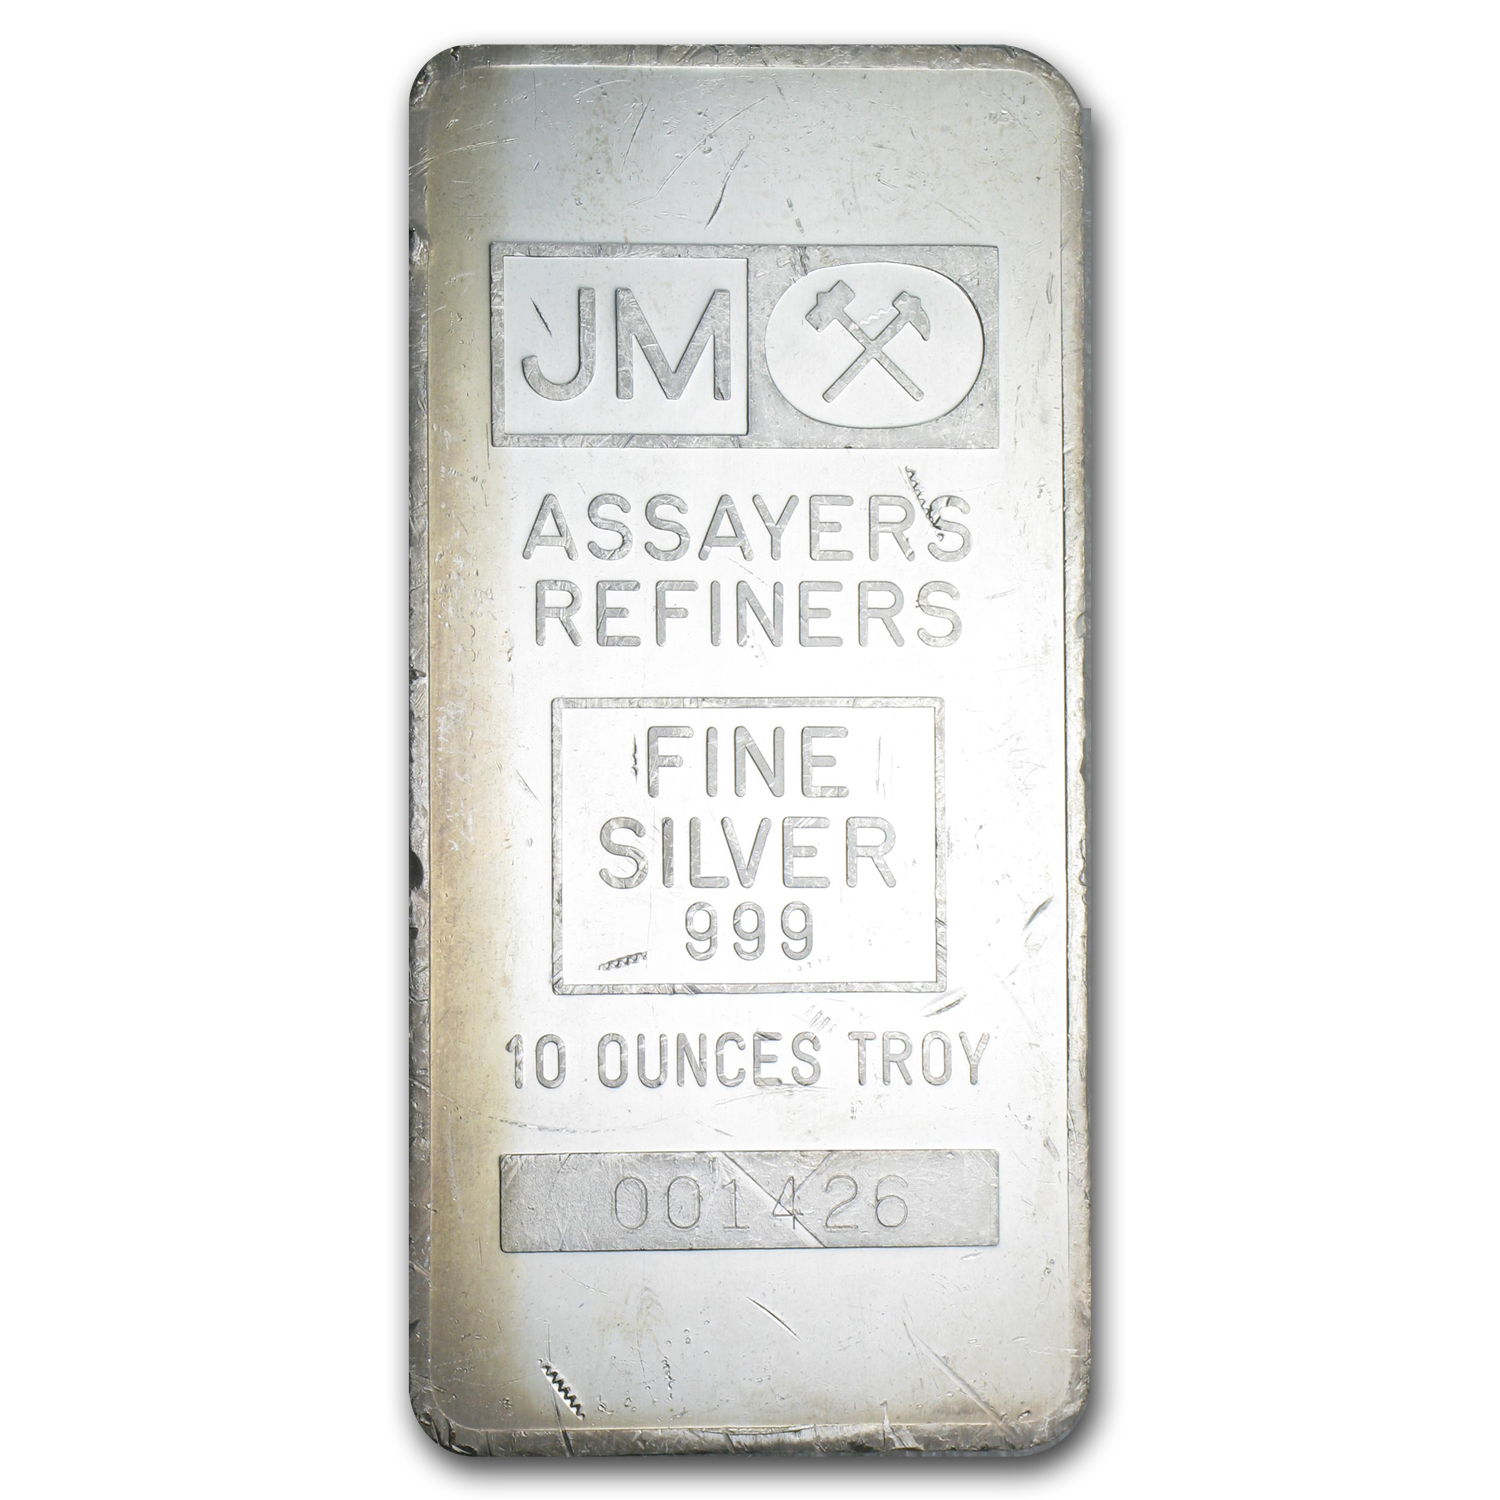 10 oz Silver Bar - Johnson Matthey (Made for TD Bank)